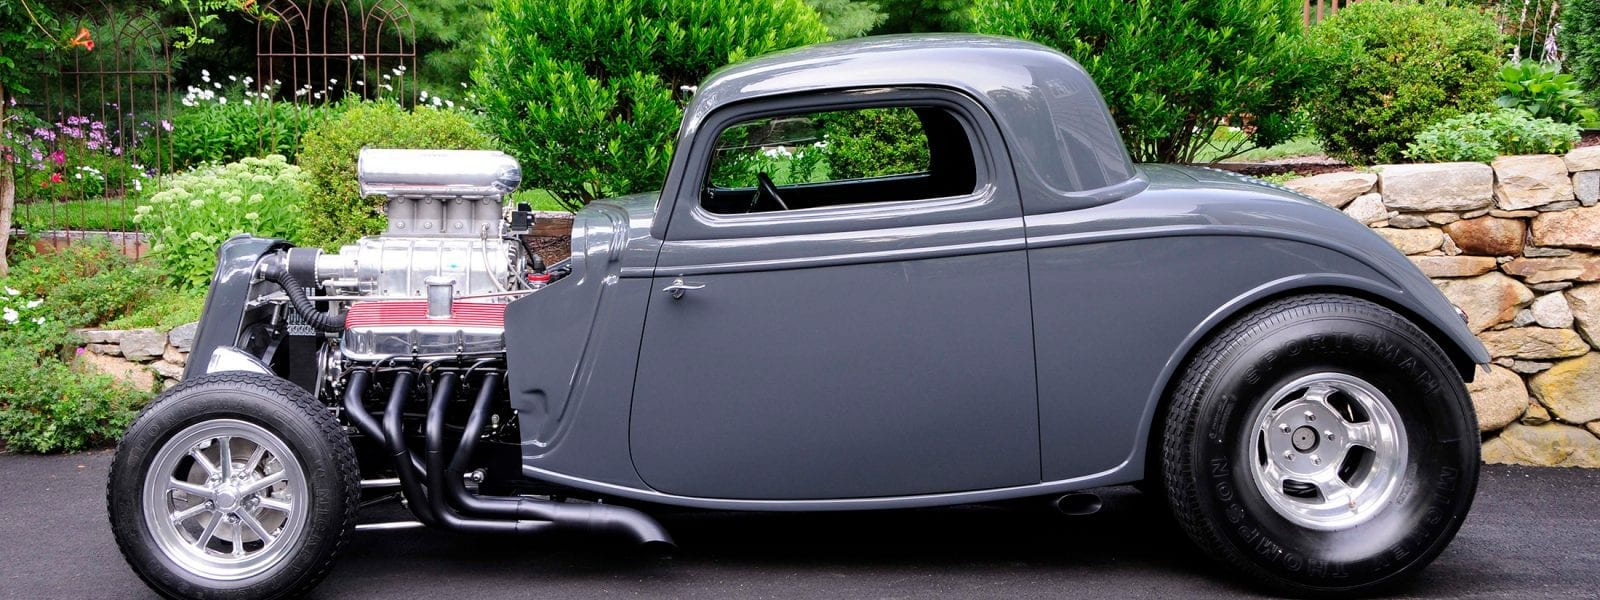 1933 Ford Coupe - Dave Bagdon